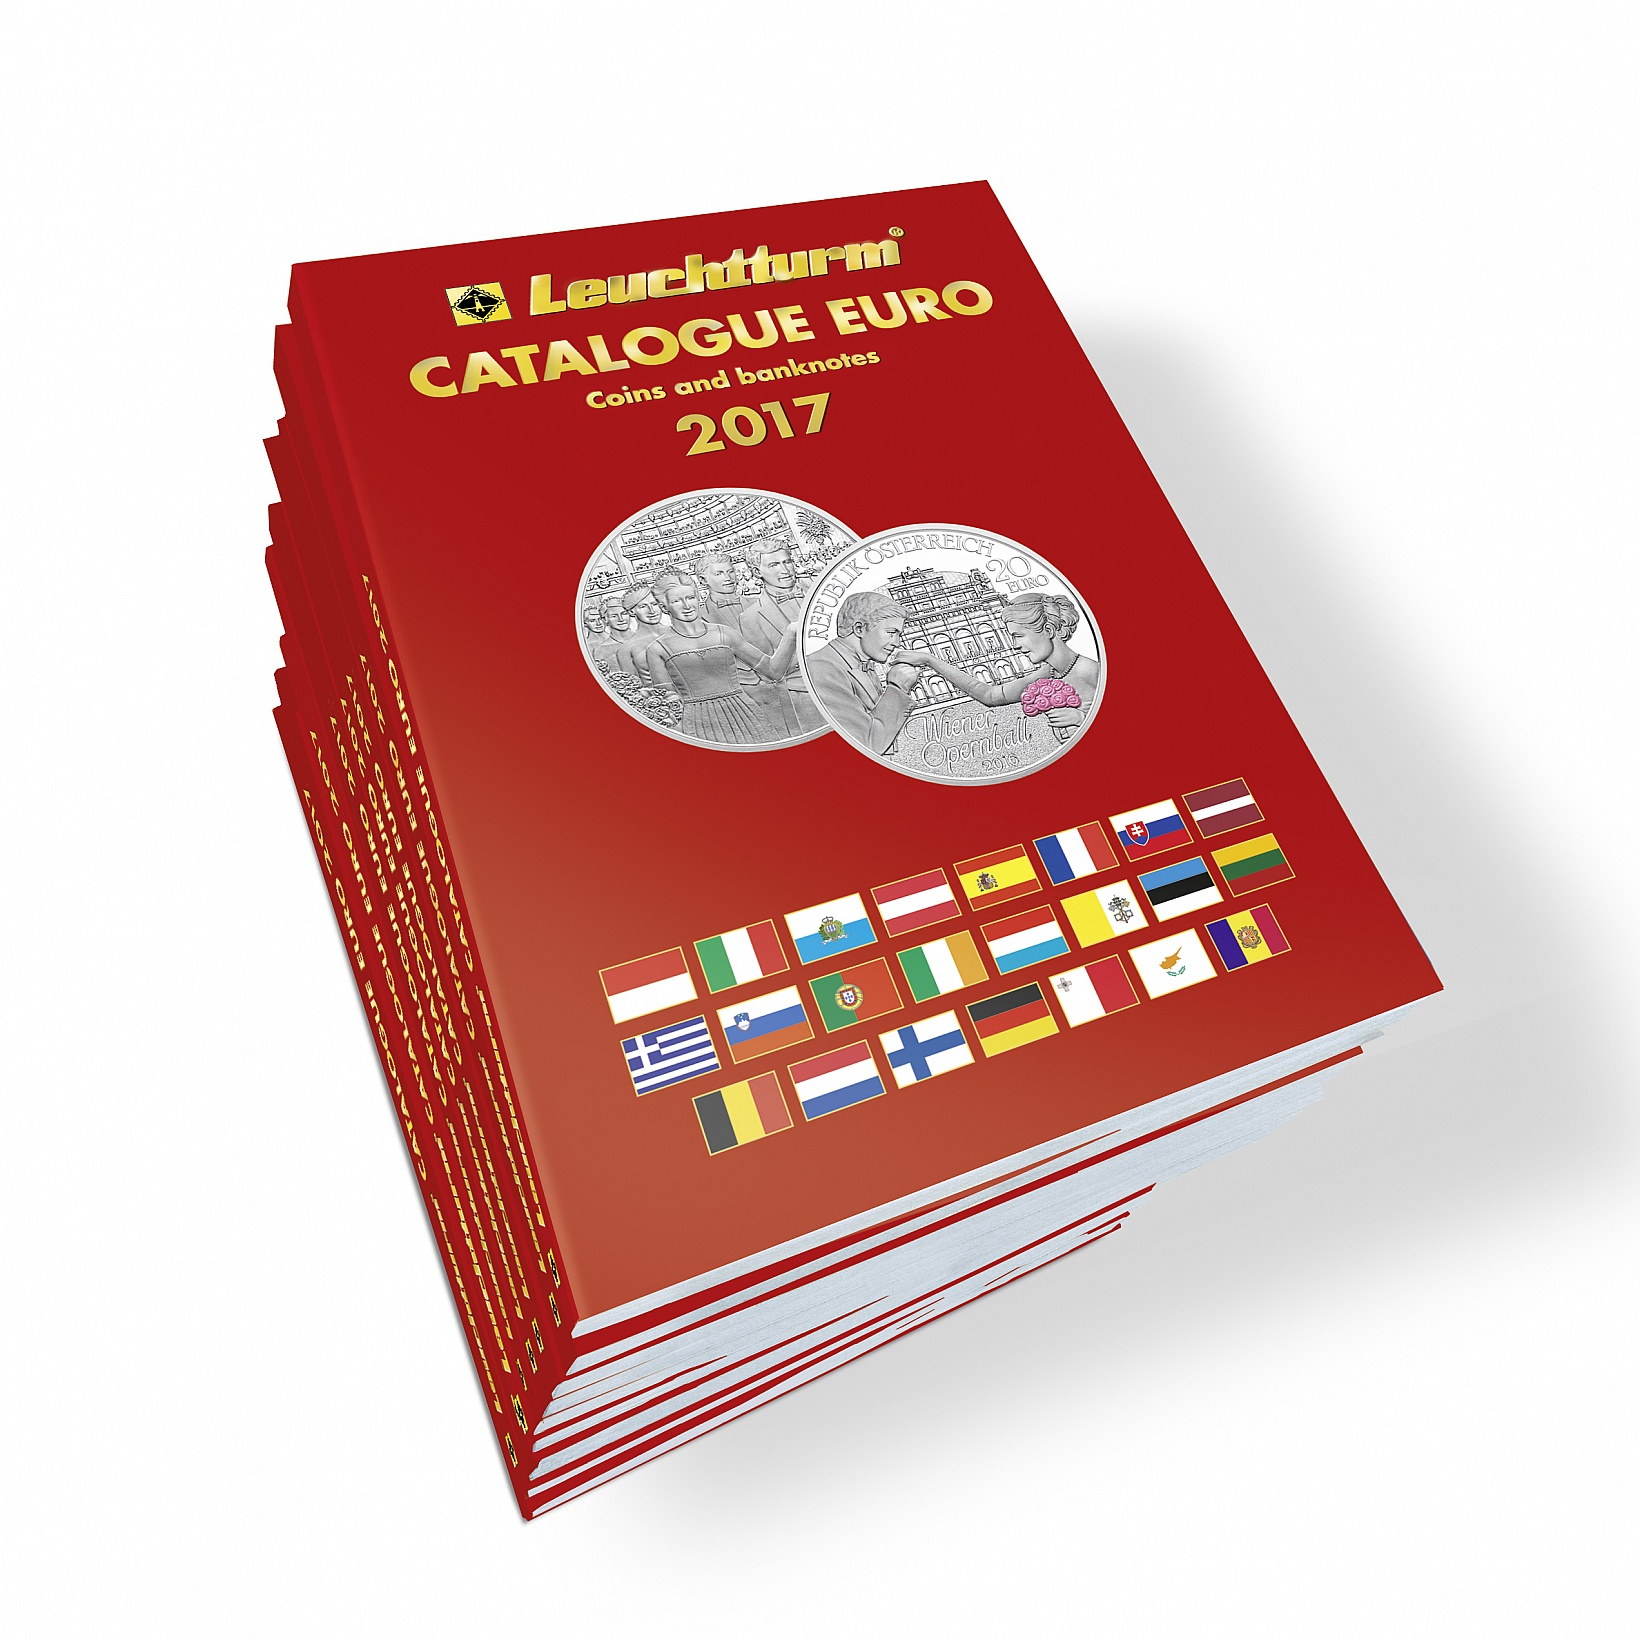 Catalogo del Euro 2020 - Ingles